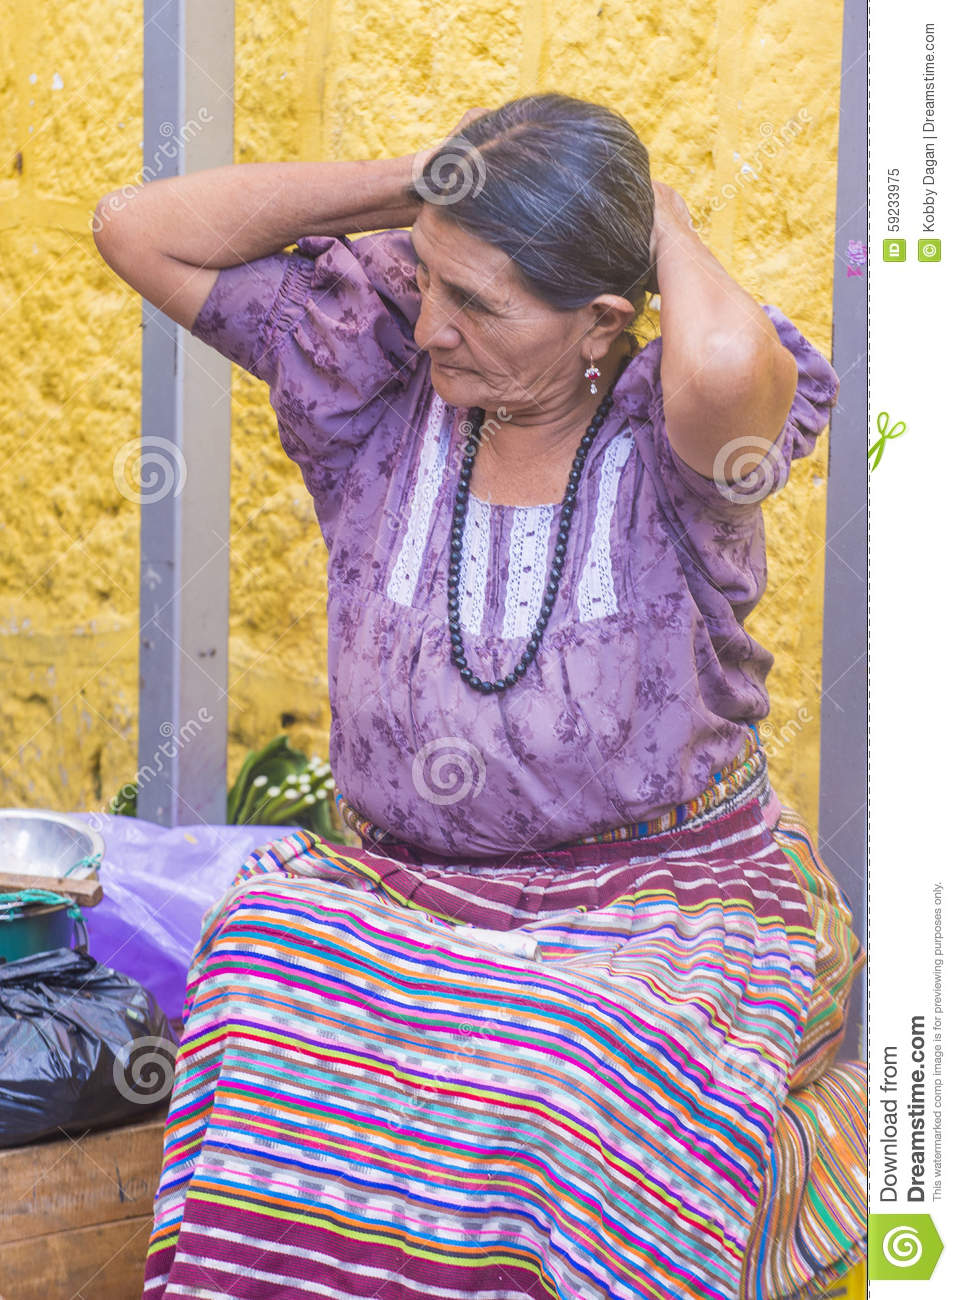 Download Mercado De Chichicastenango Imagen editorial - Imagen de chichi, vendedor: 59233975